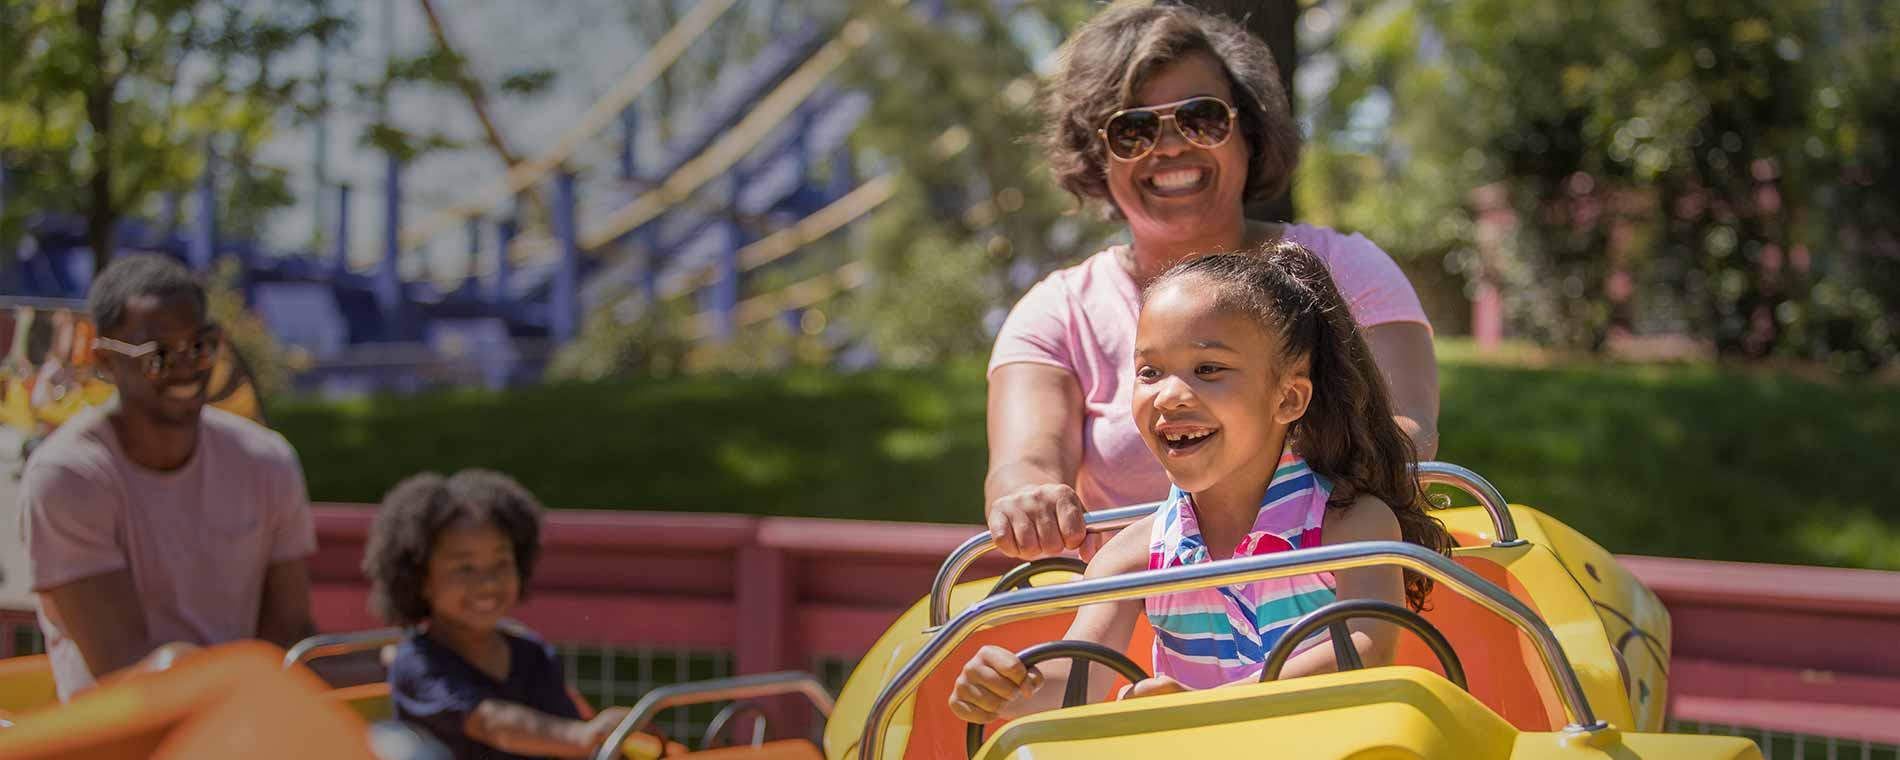 Park 'N' Play Deals during PEANUTS Celebration at Carowinds